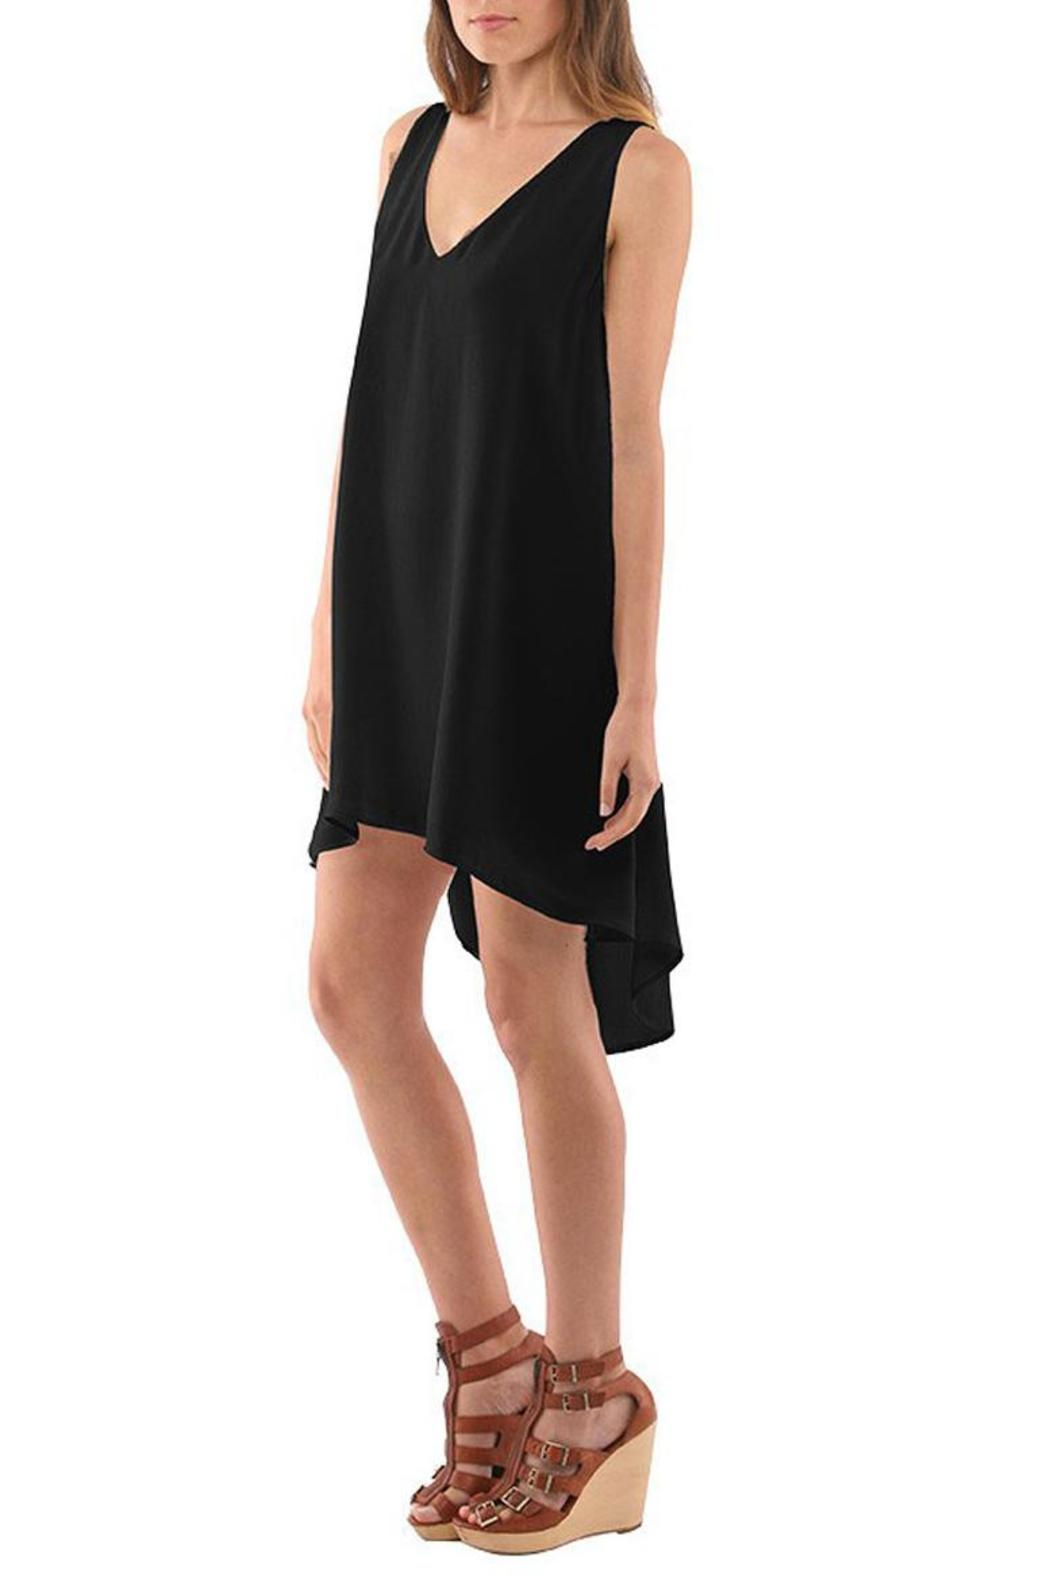 Twelfth Street by Cynthia Vincent Pleated Swing Dress - Front Cropped Image